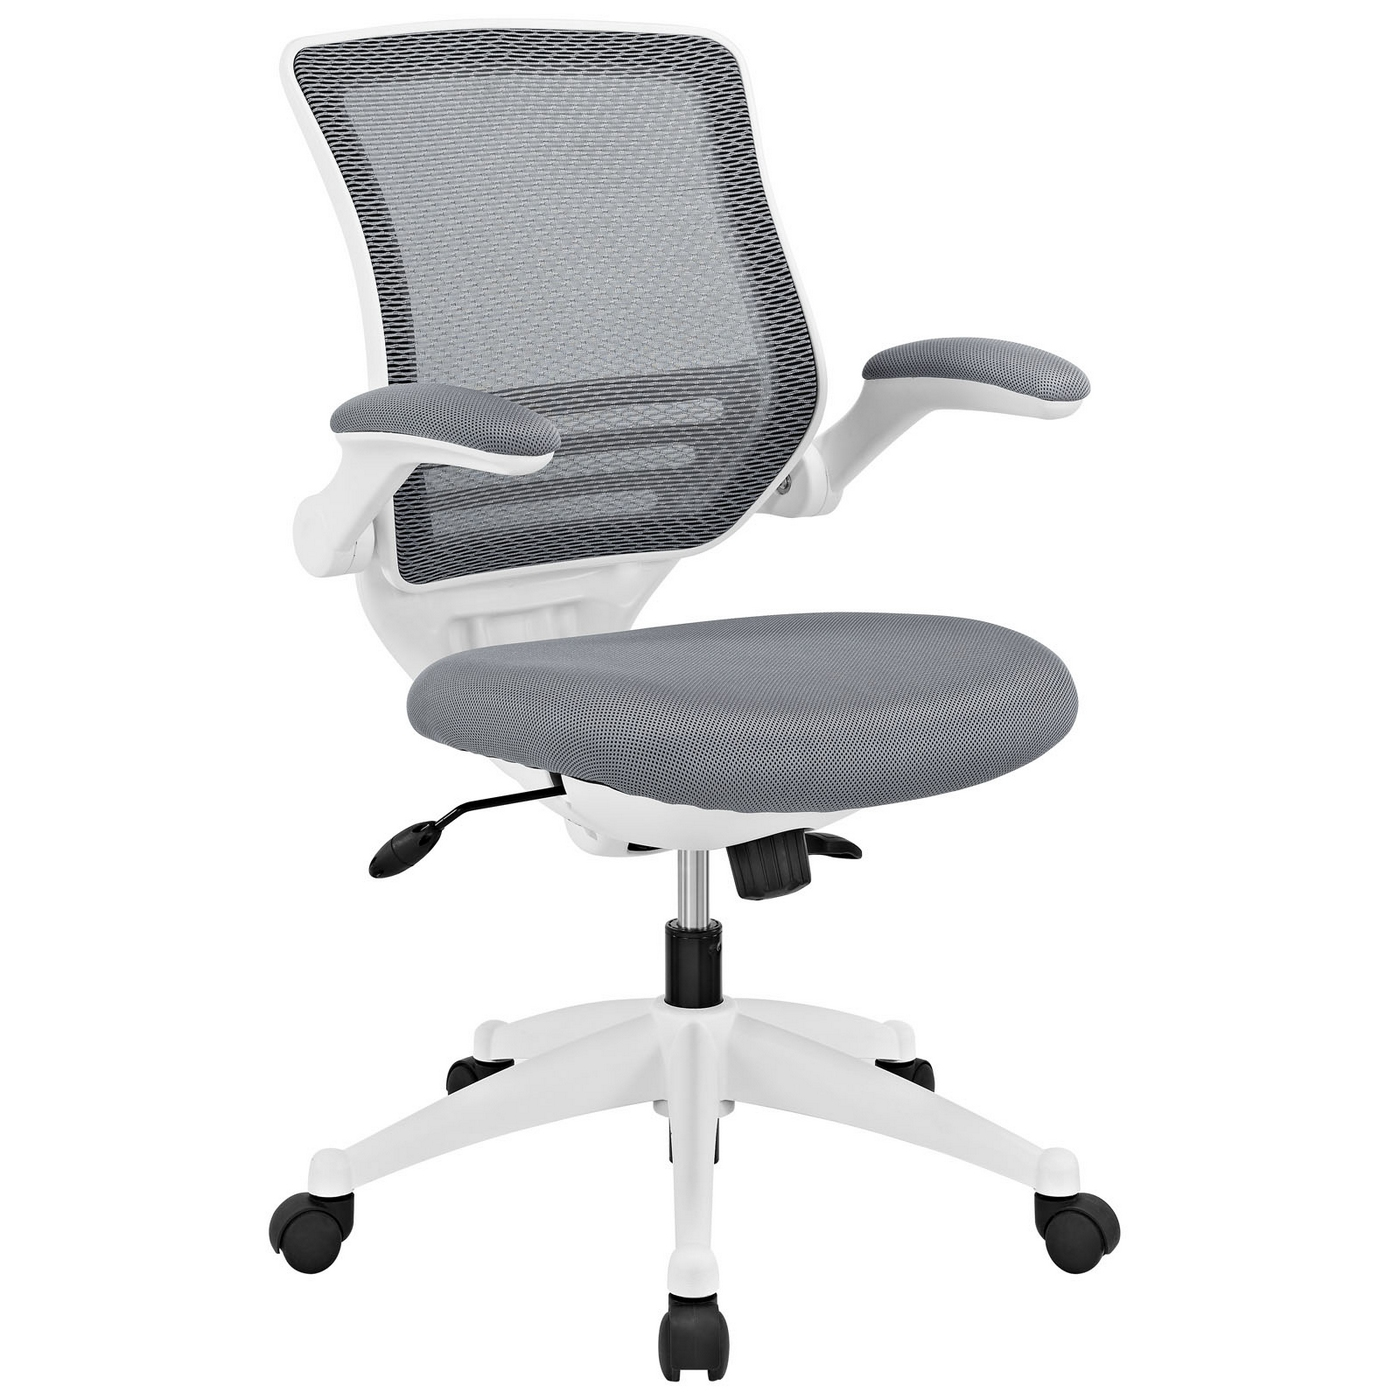 Edge modern adjustable ergonomic white frame office chair for Modern white office chair